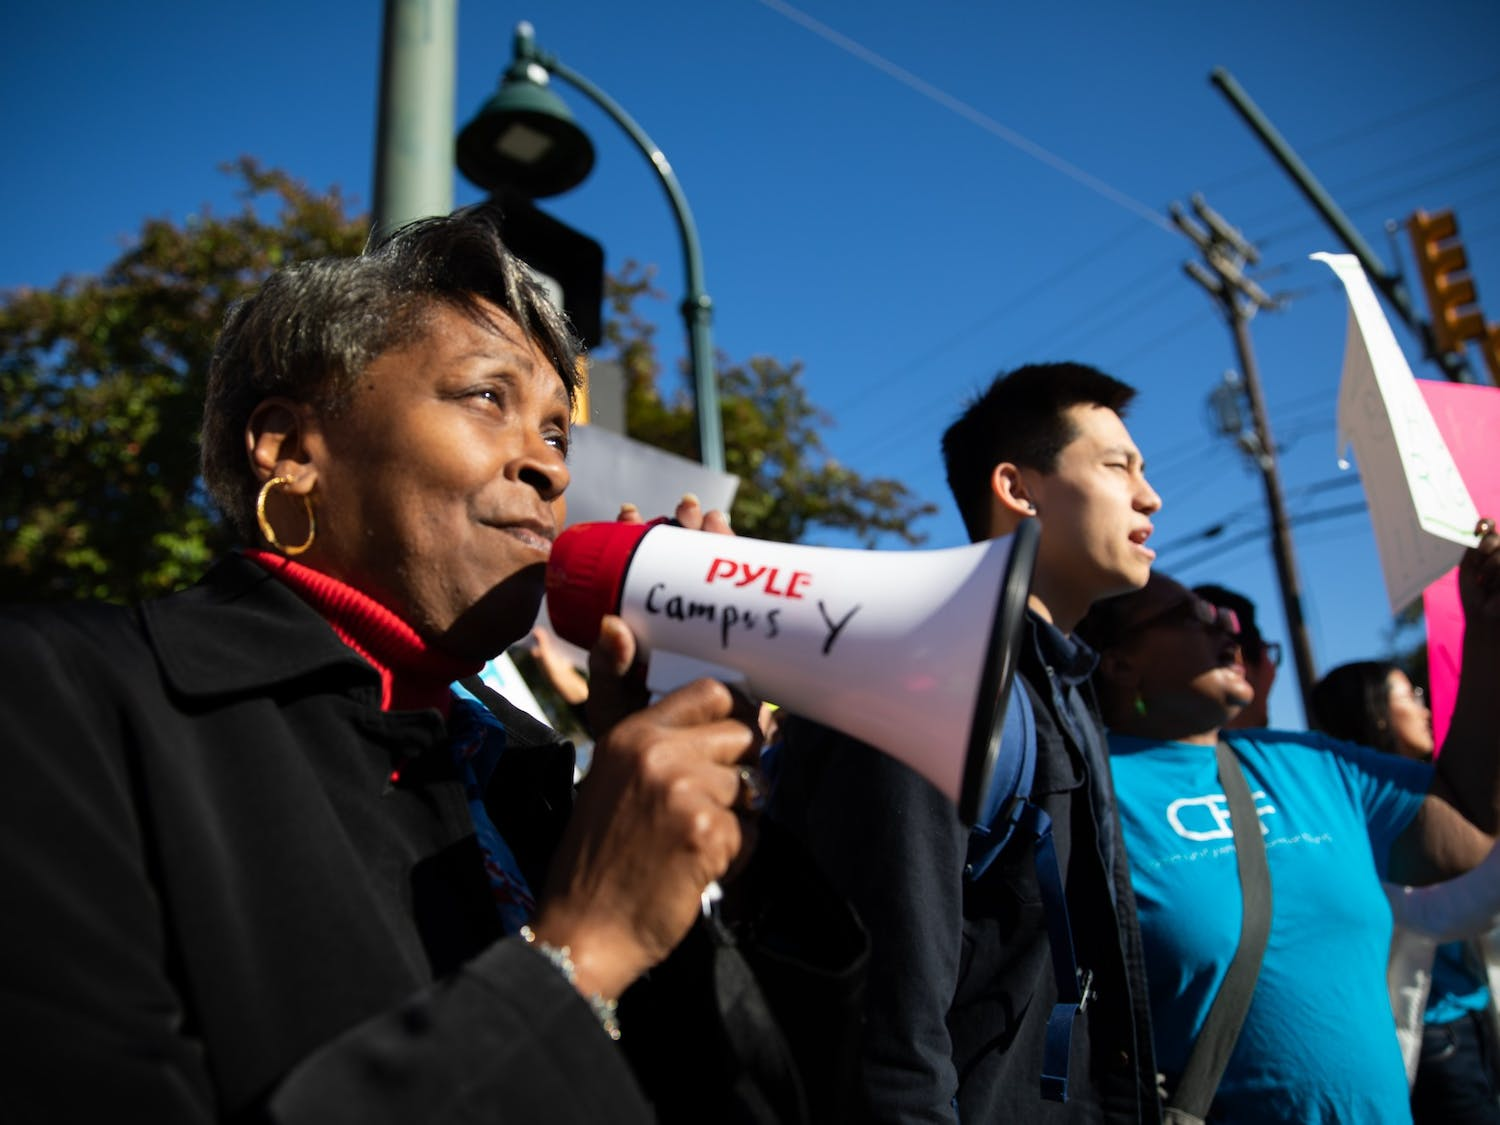 (From left) Yvete Mathews, 61, of Chapel Hill, and Tai Huynh, a junior computer science major, rally at a demonstration organized by Community Empowerment Fund calling for affordable housing accommodations for people at or below 30% AMI on Rosemary Street on Friday, Nov. 1, 2019.